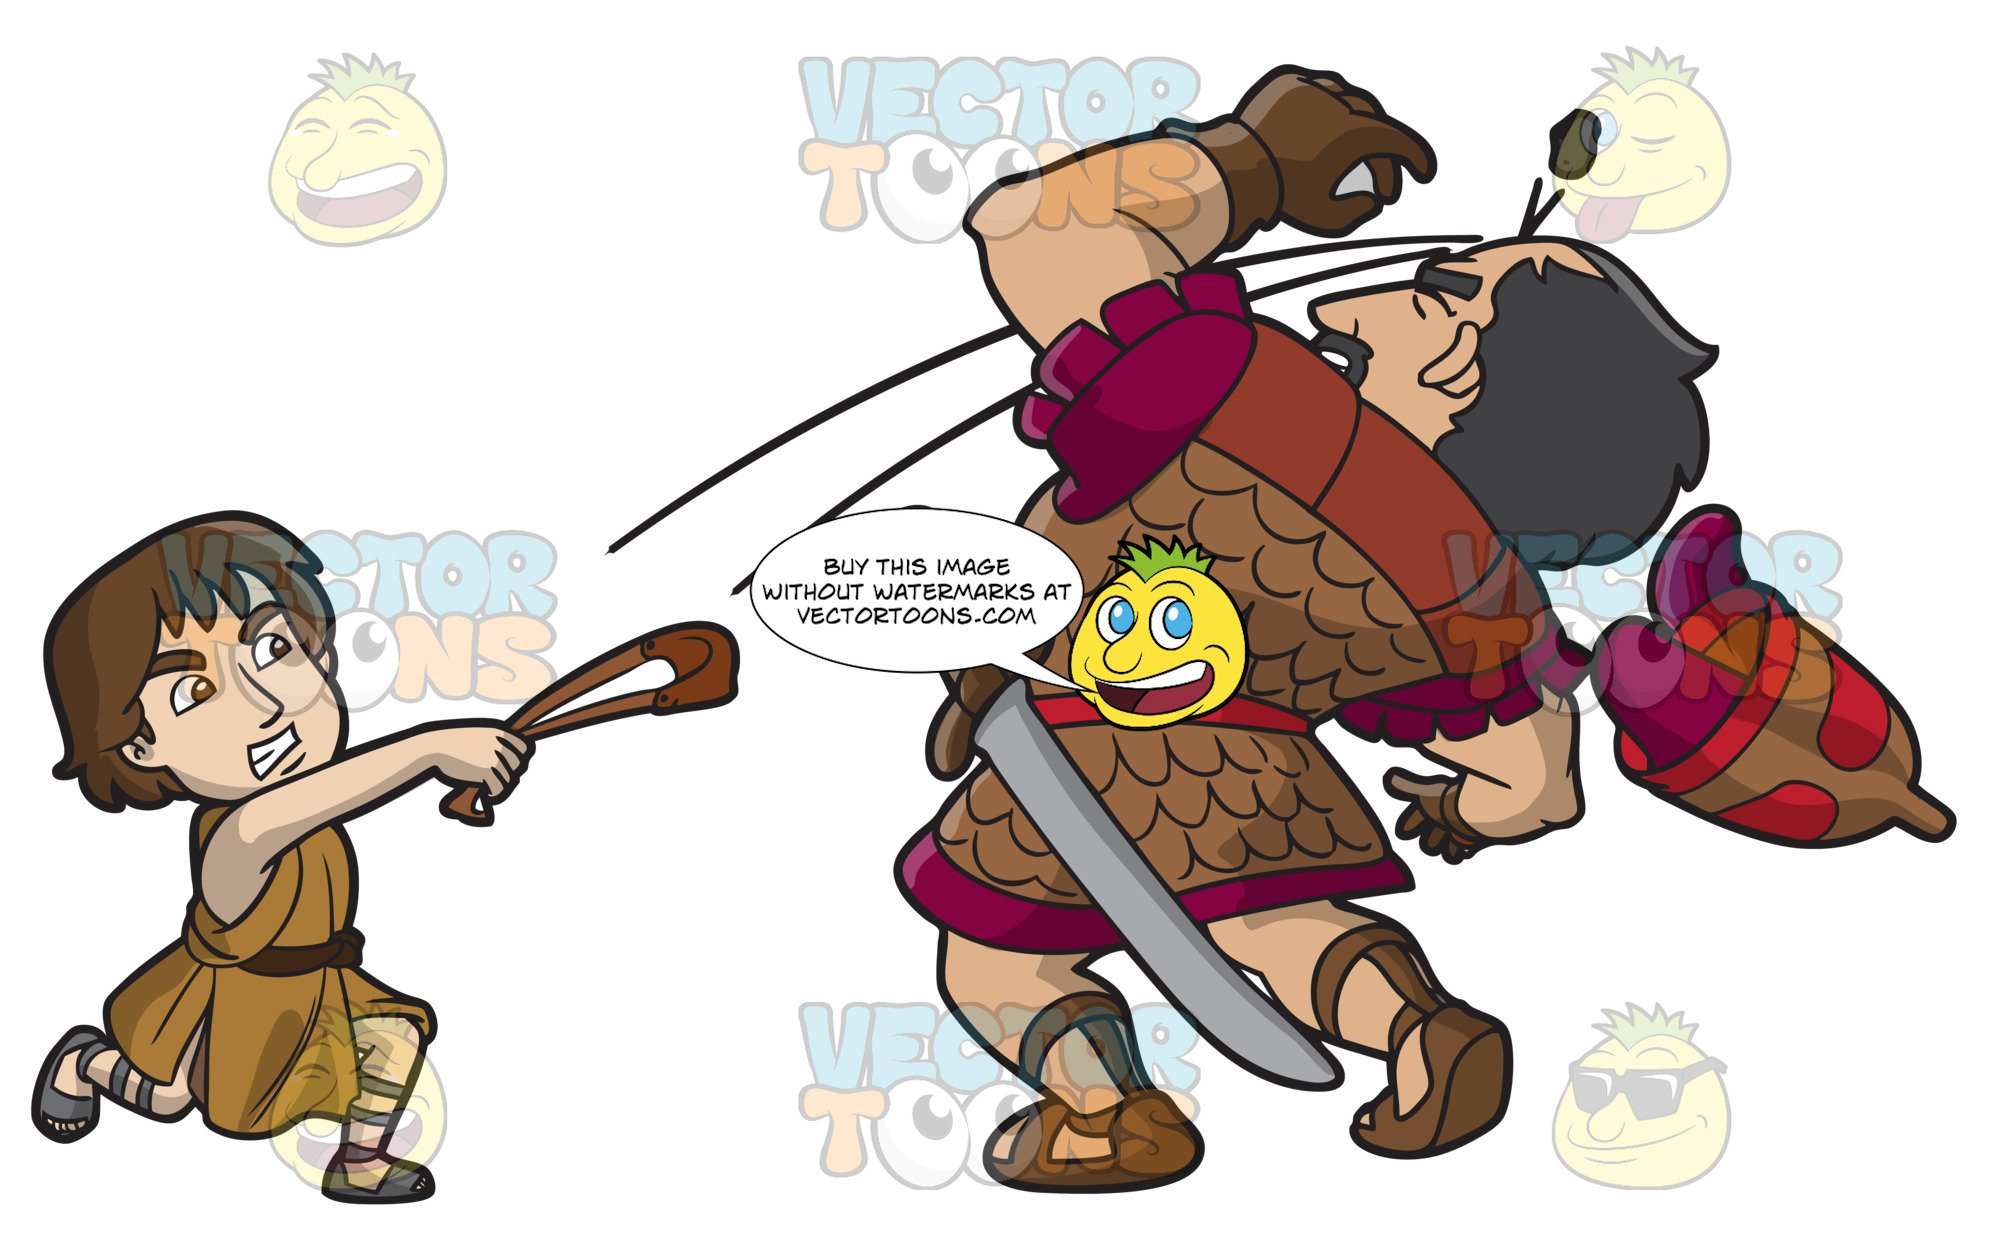 David and goliath clipart graphic royalty free library David Hitting Goliath With A Sling Shot graphic royalty free library